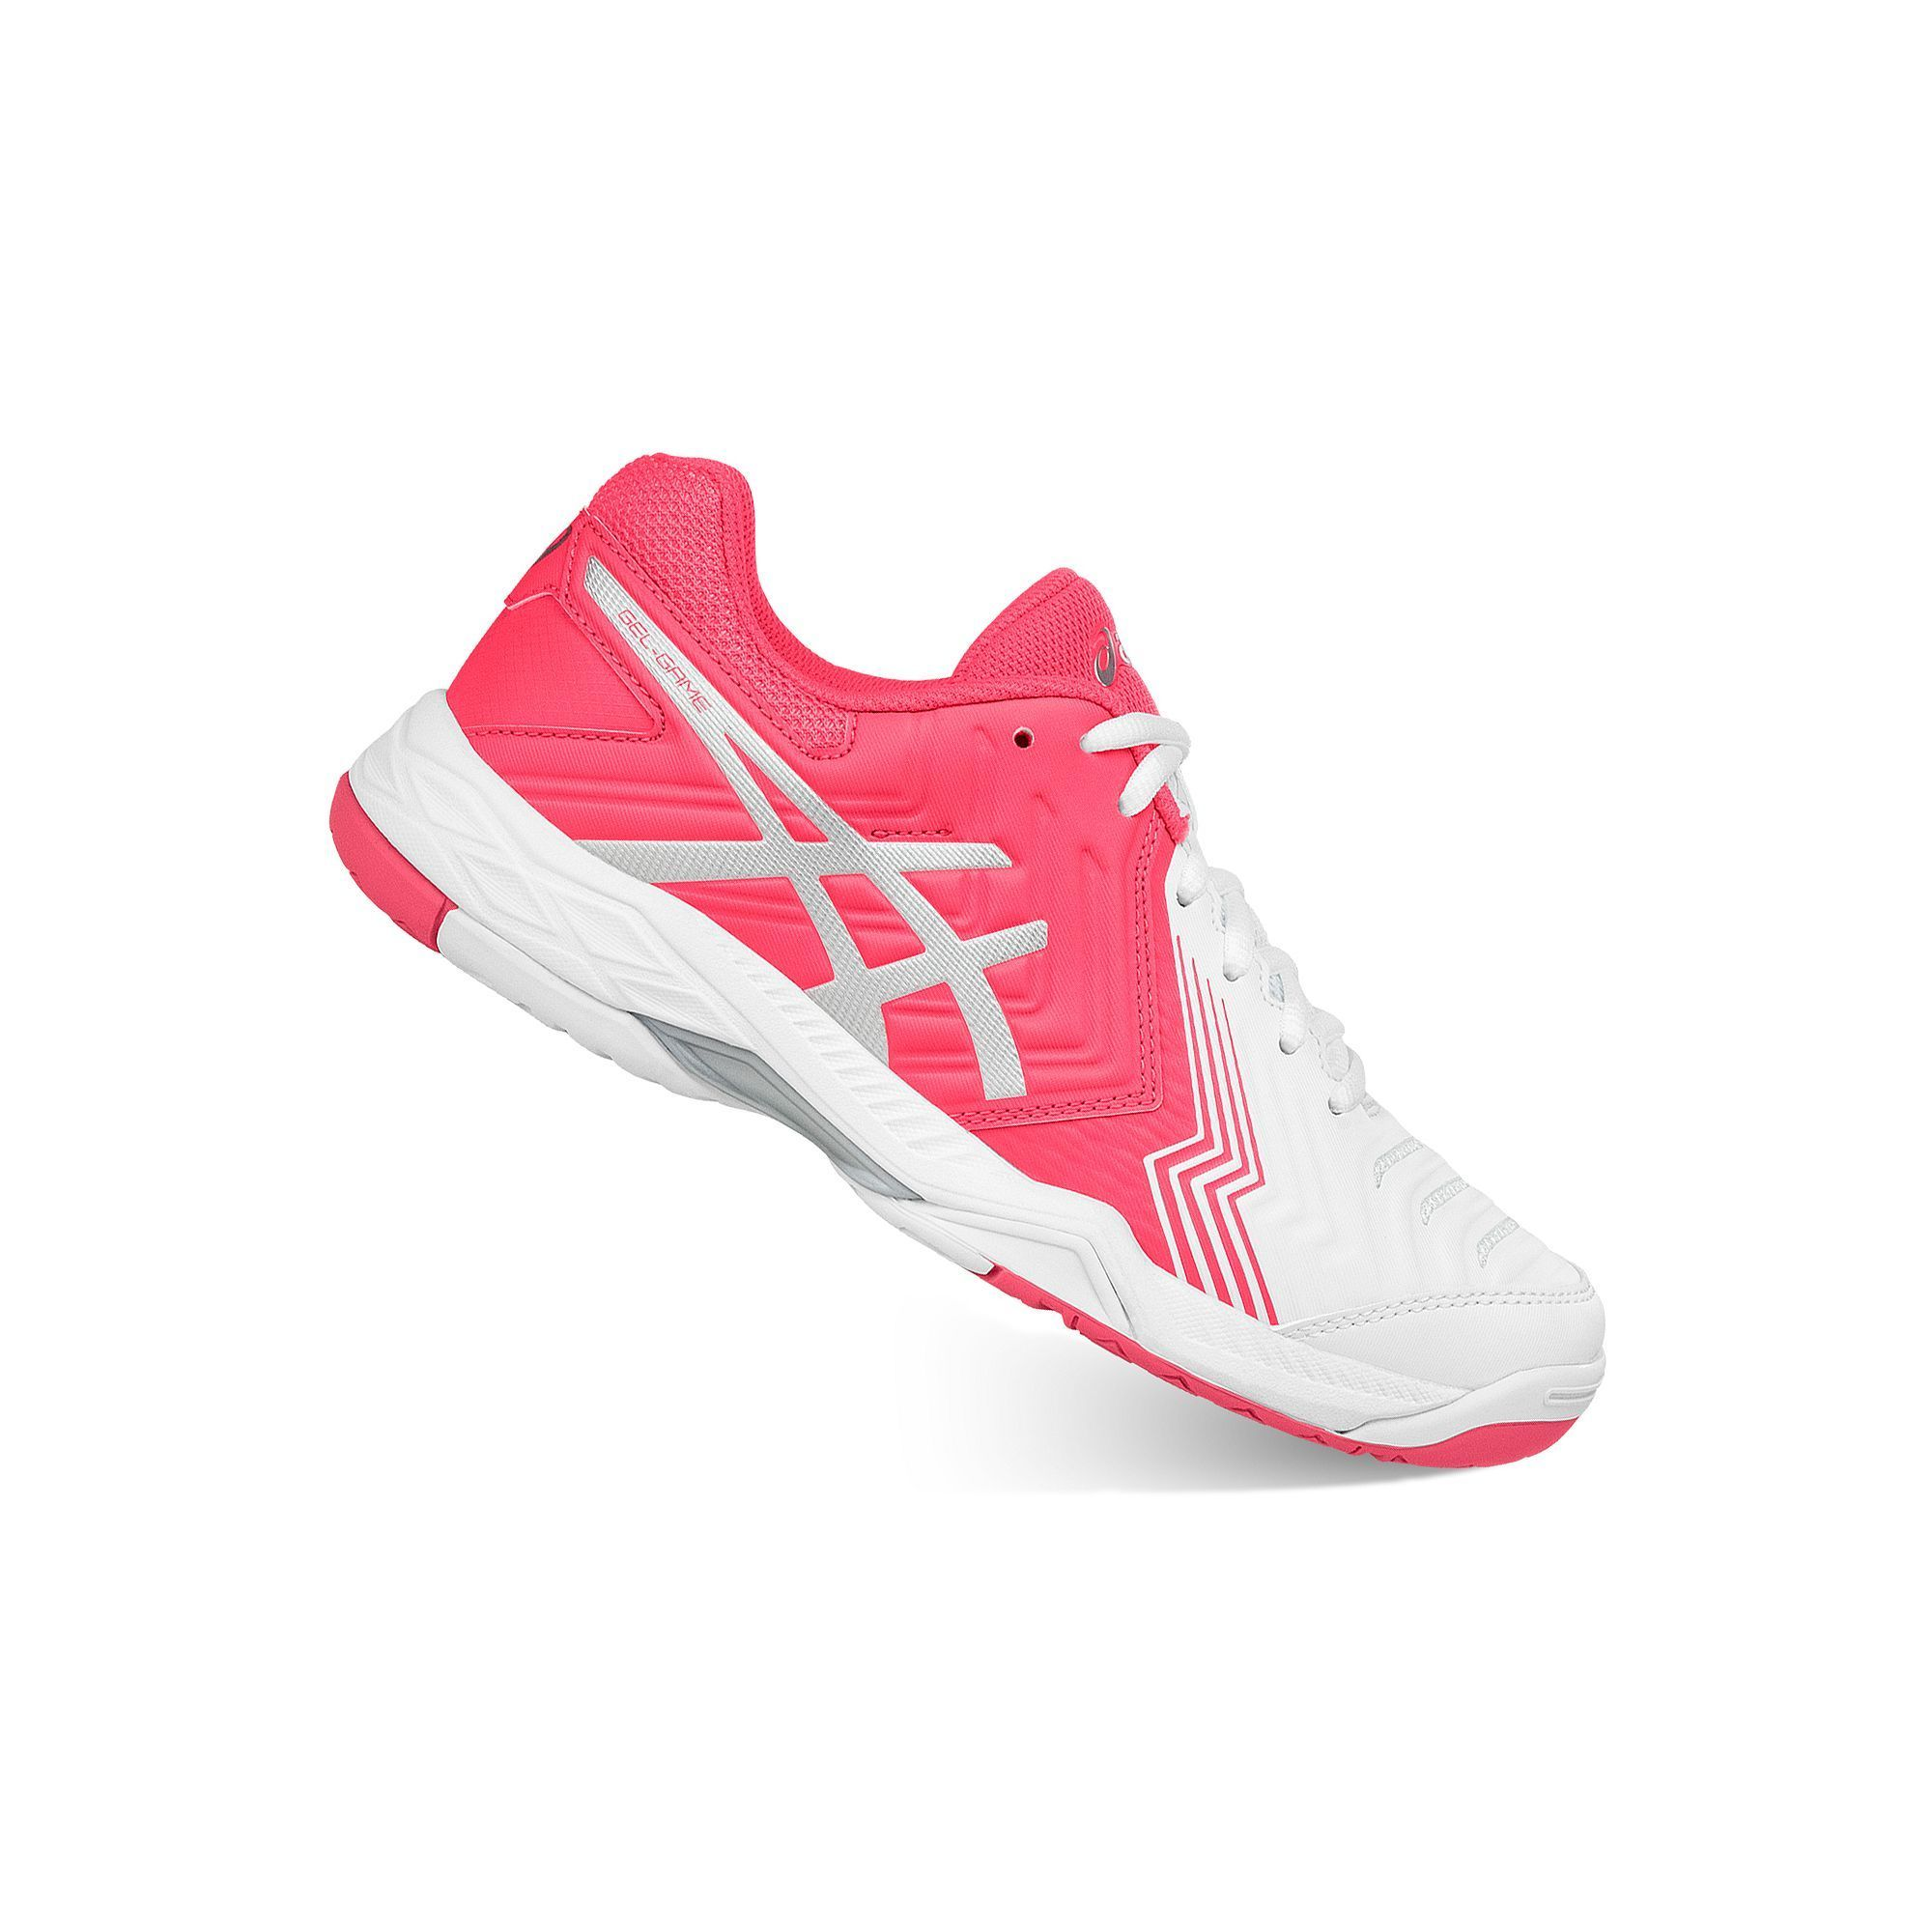 ASICS GEL-Game 6 Women's Tennis Shoes, Size: 11, White Oth